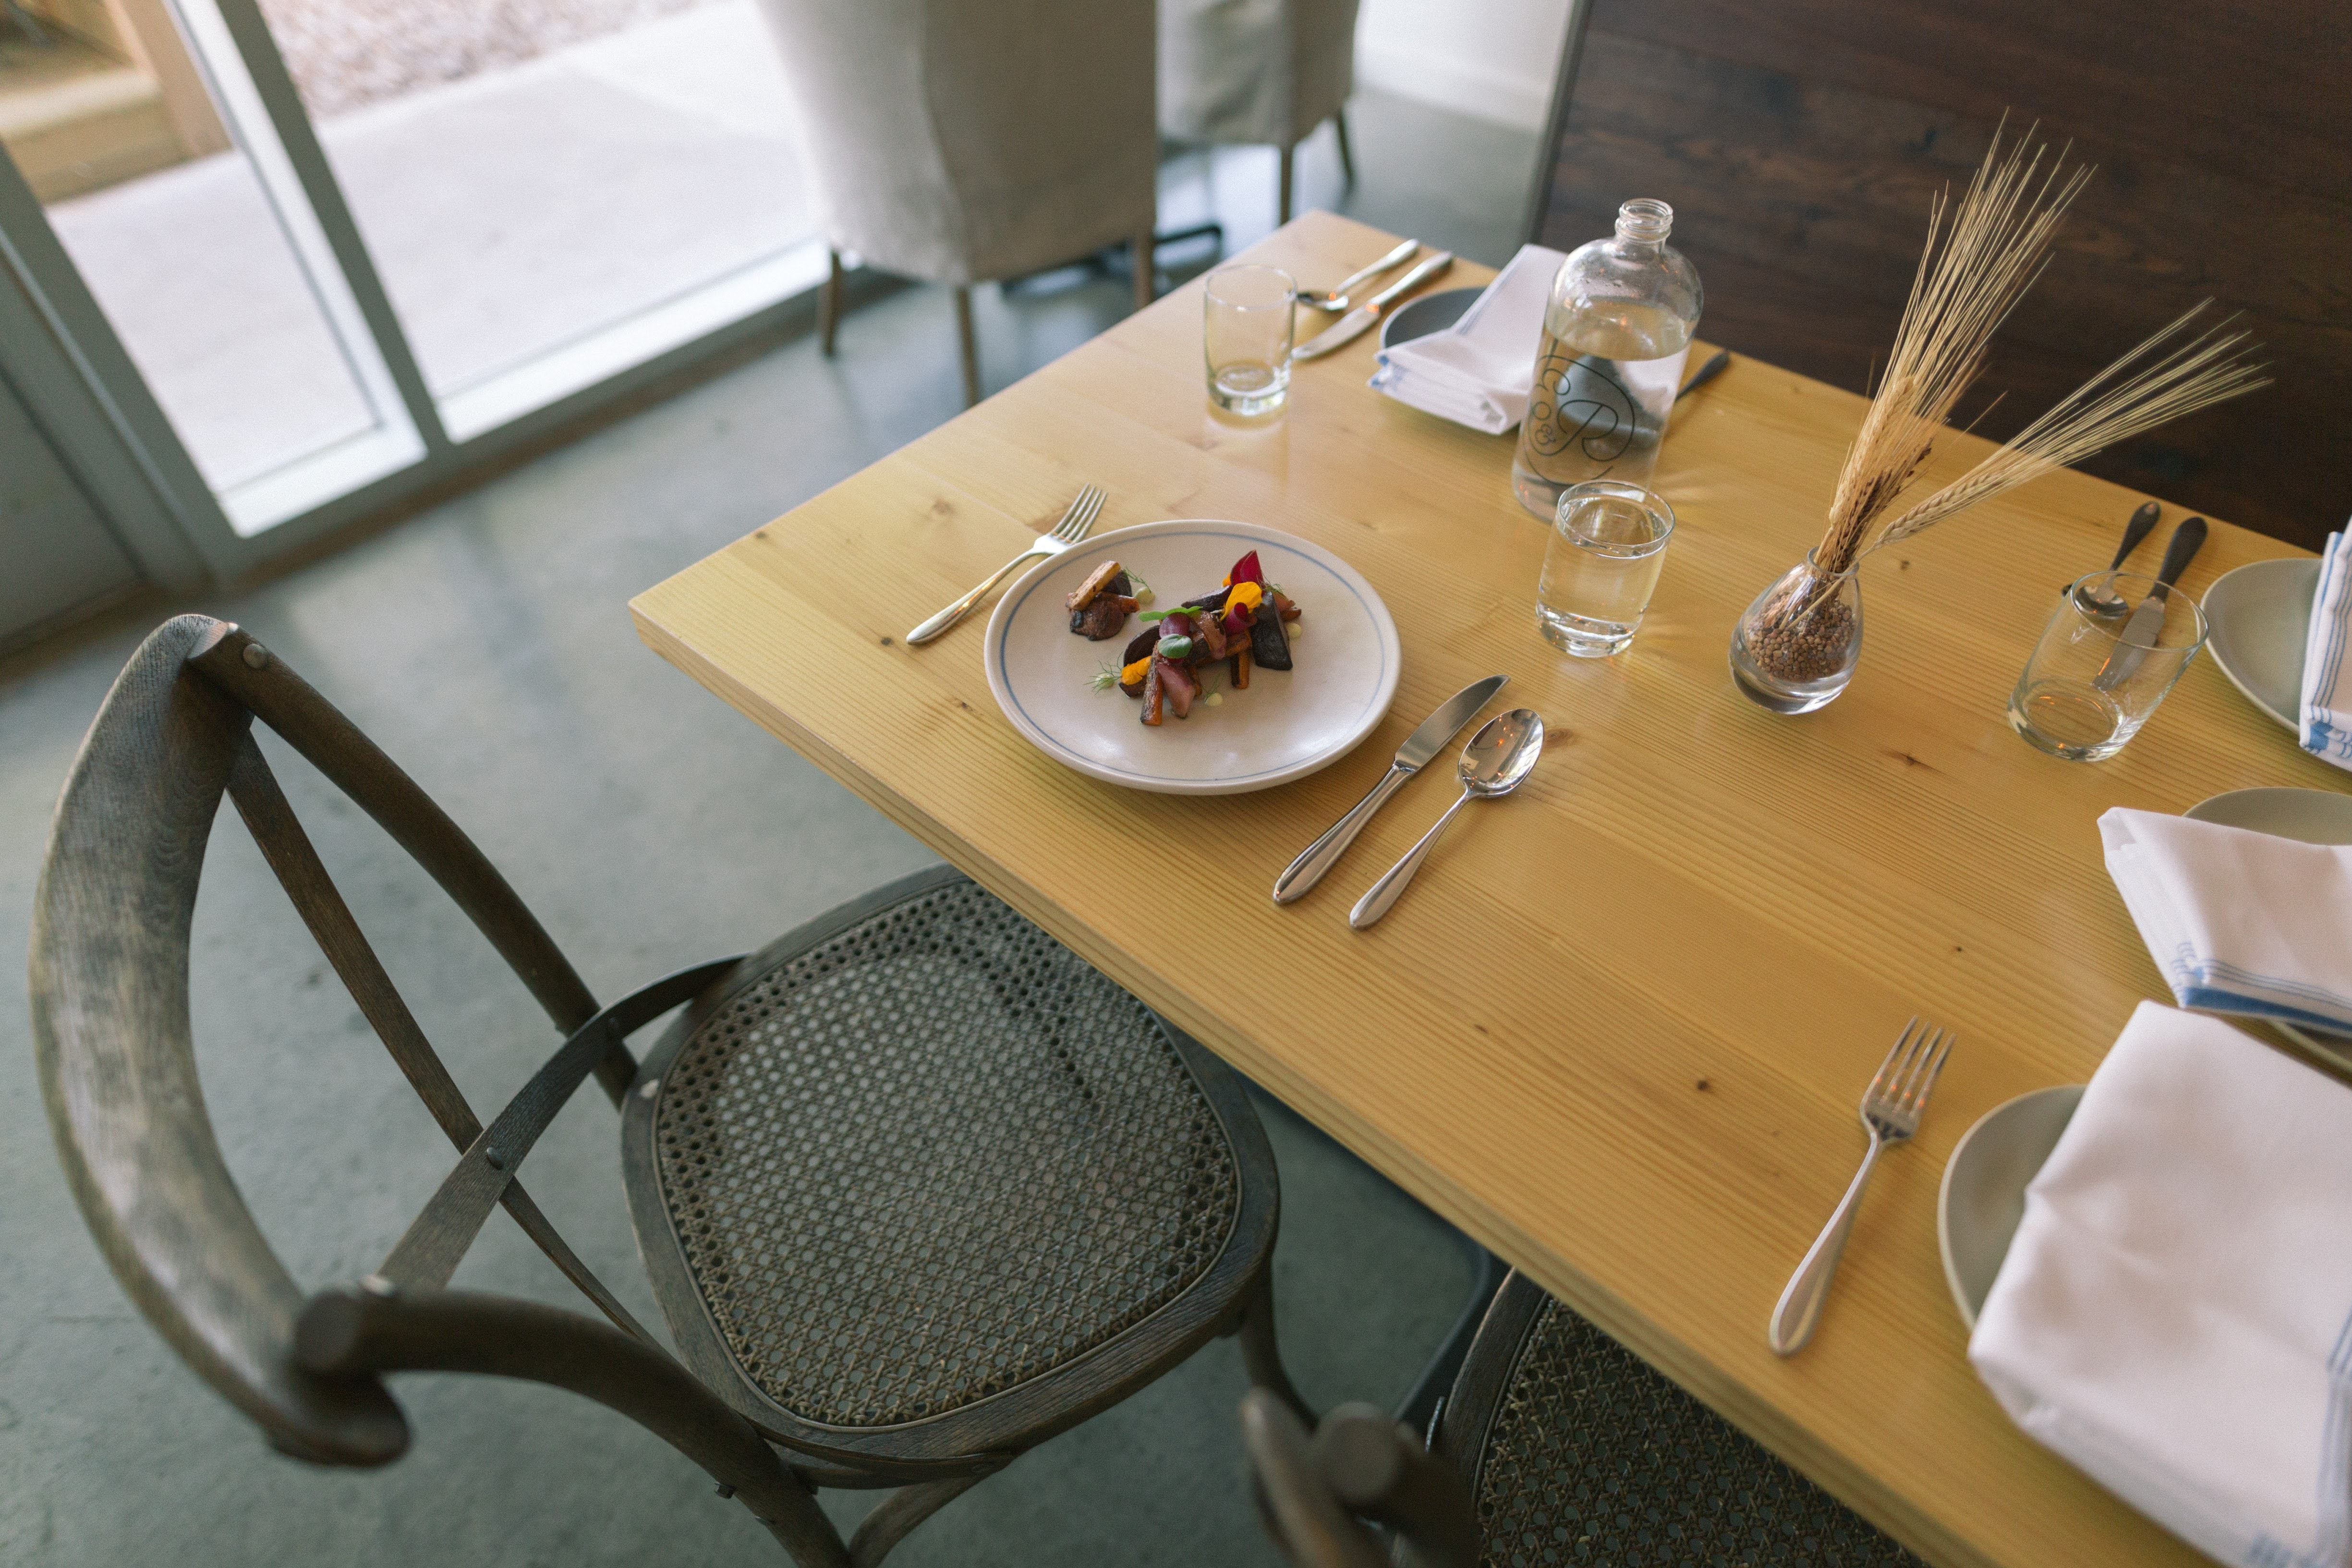 Table set with a small appetizer plate at a trendy restaurant